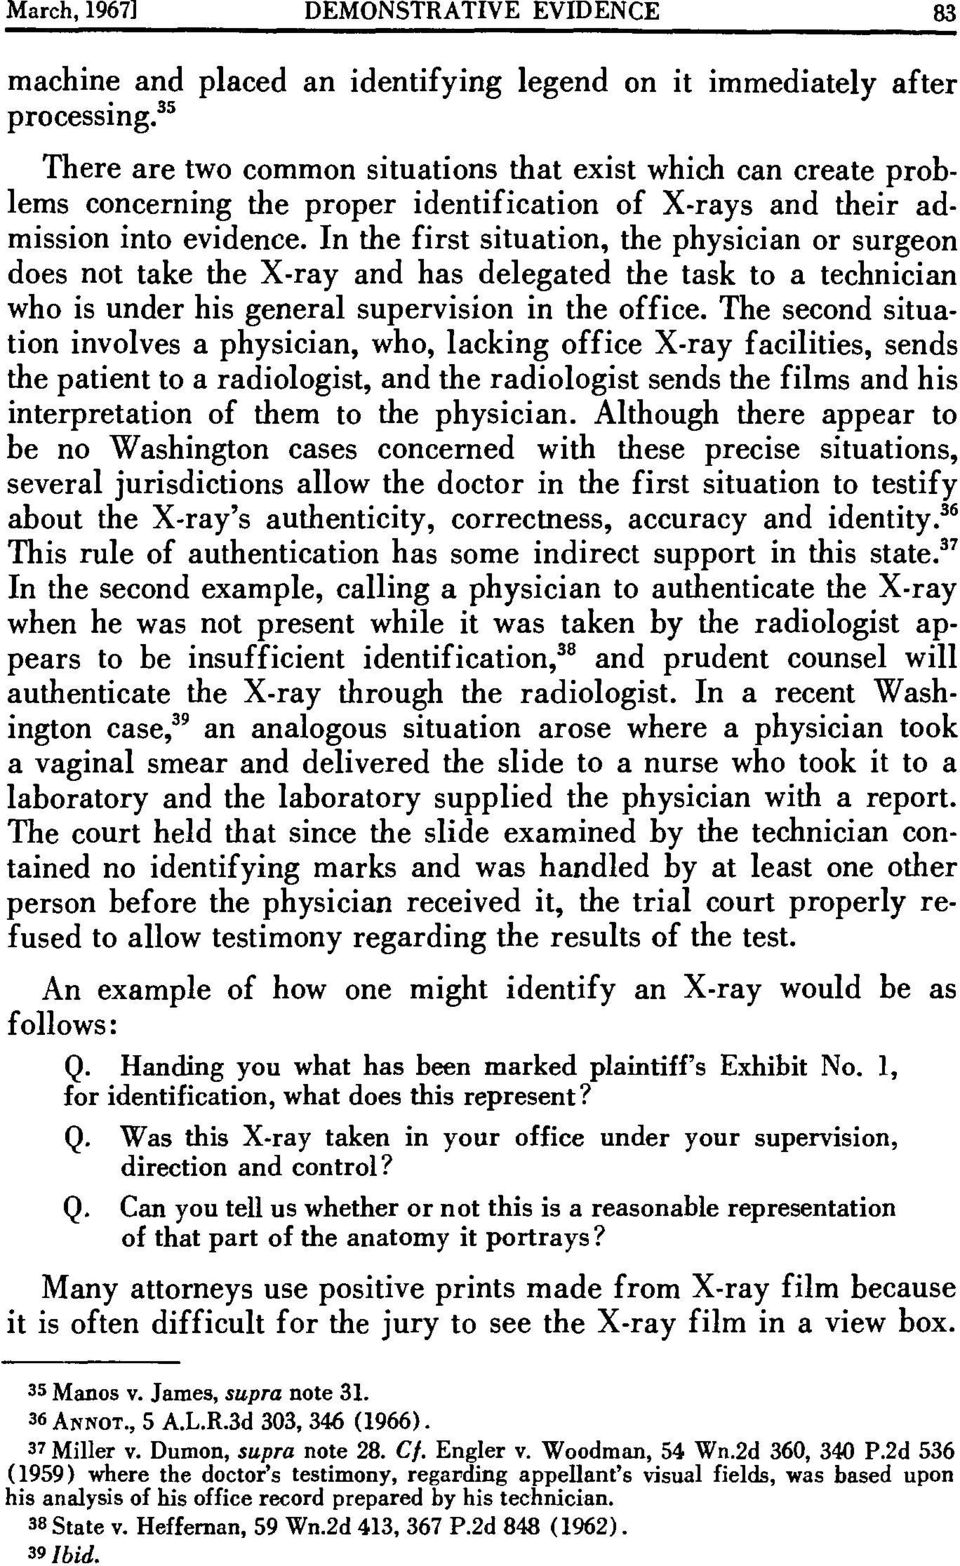 In the first situation, the physician or surgeon does not take the X-ray and has delegated the task to a technician who is under his general supervision in the office.